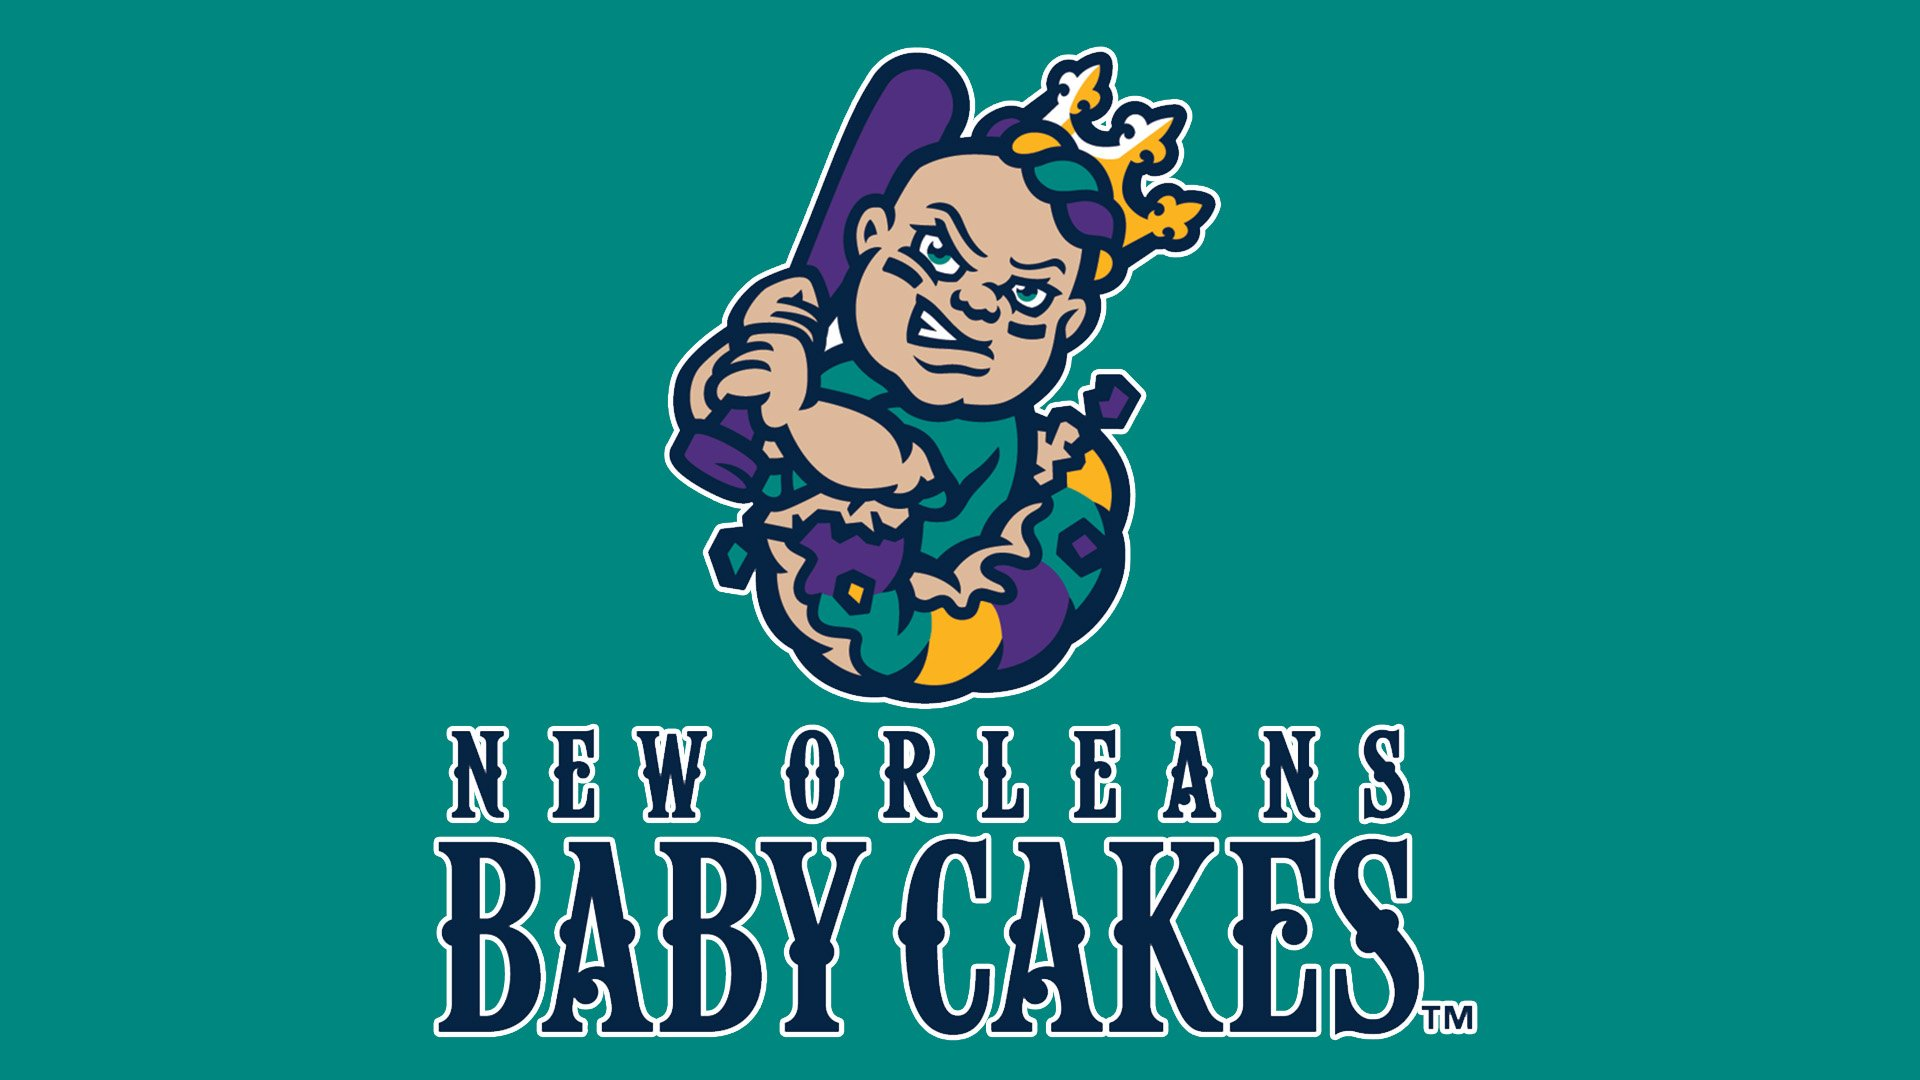 New Orleans Baby Cakes Logo, New Orleans Baby Cakes Symbol